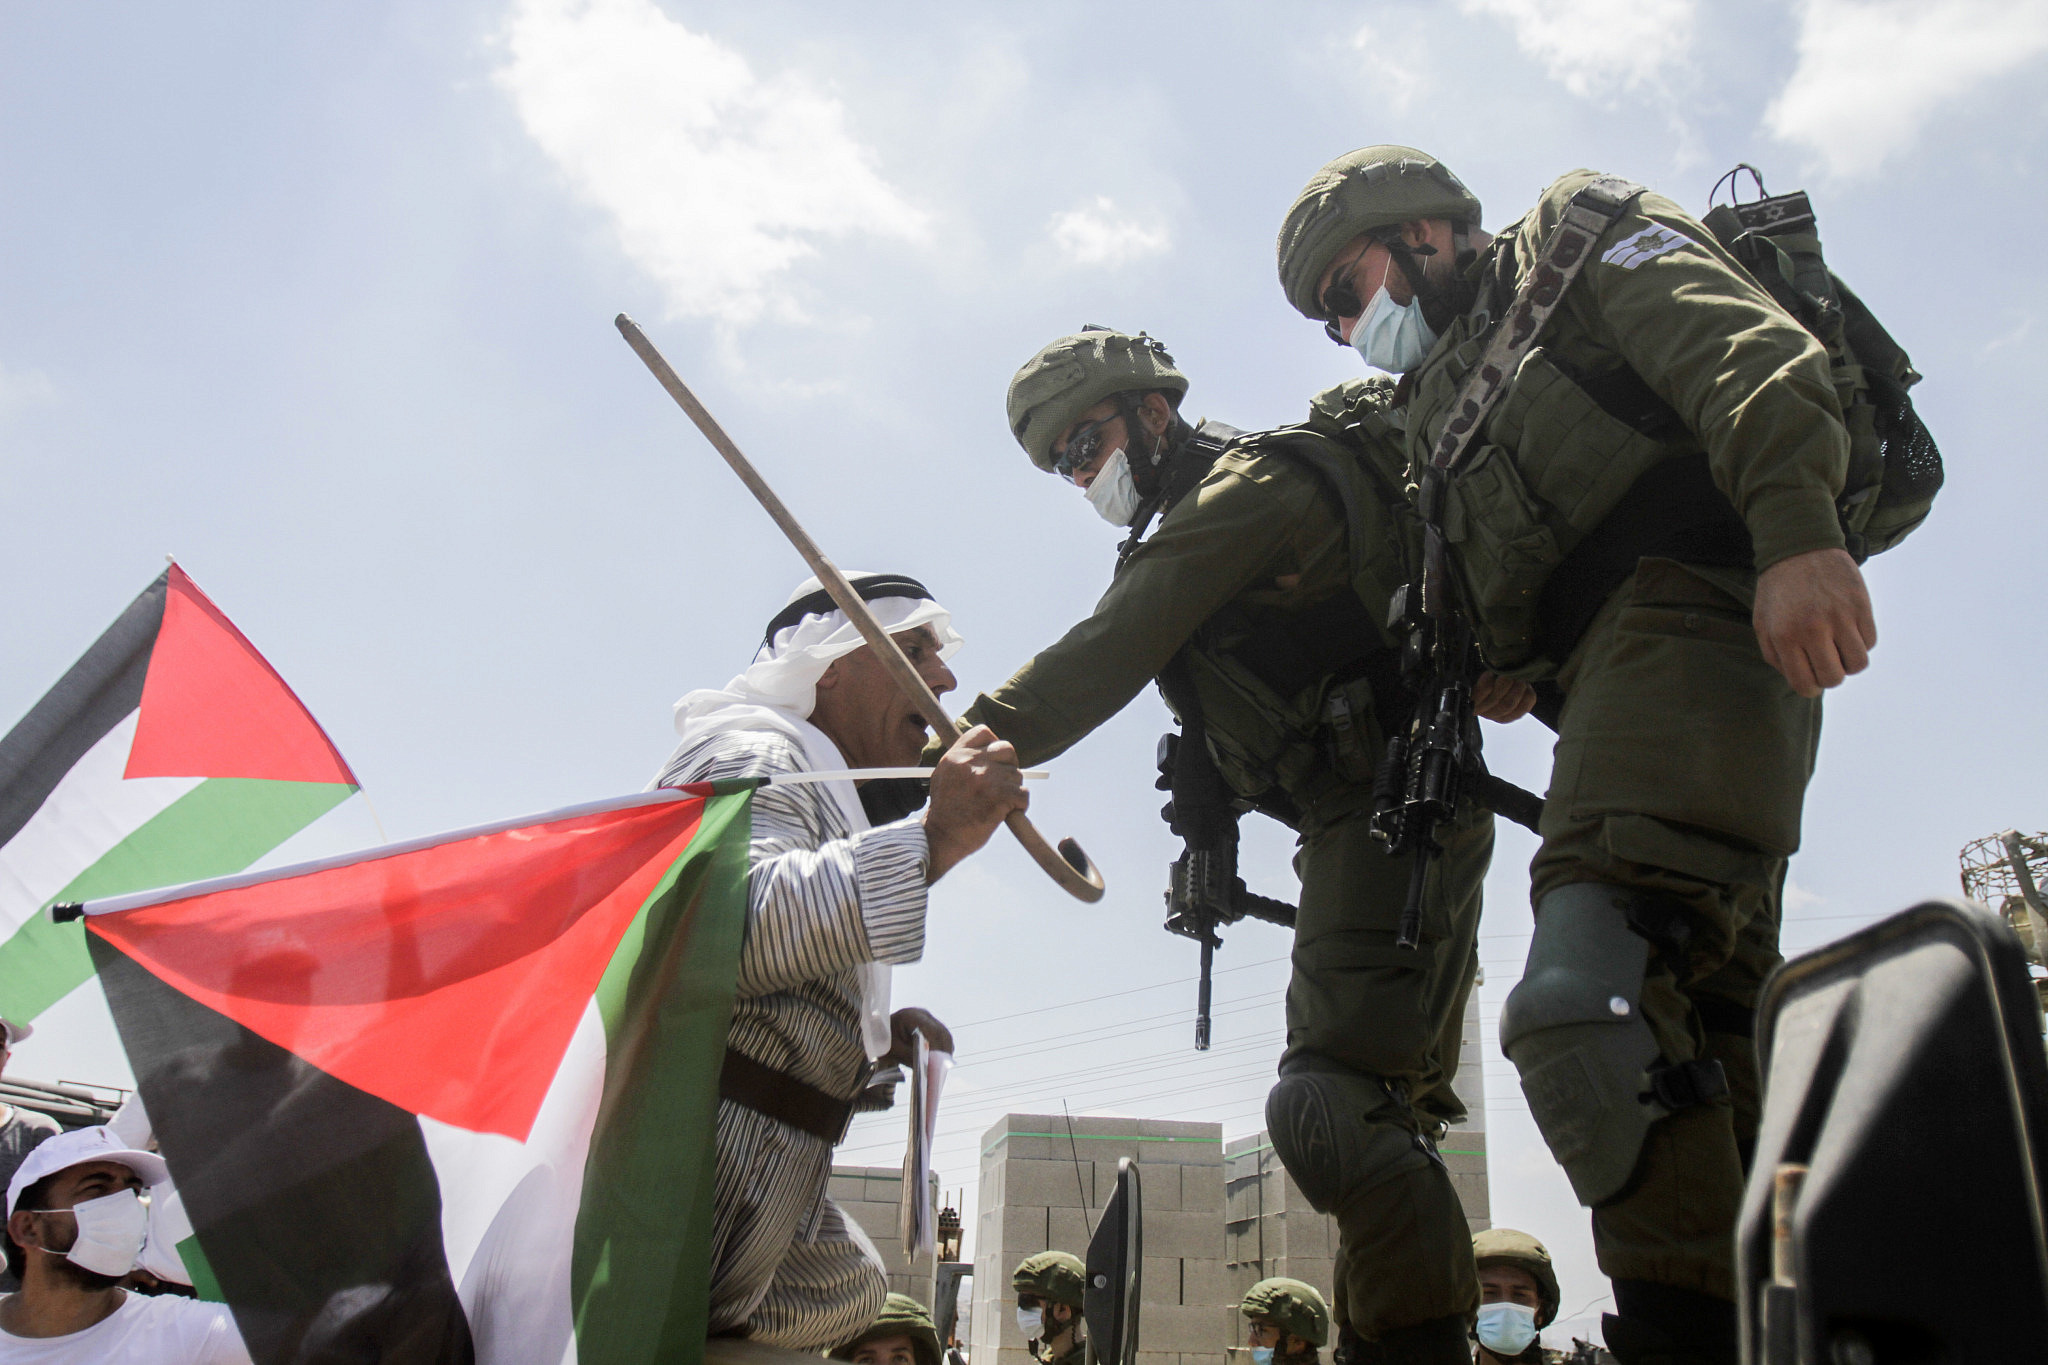 Palestinians protest against the deal between Israel and the UAE in the village of Haris, near the West Bank city of Nablus, August 14, 2020. ( Nasser Ishtayeh/Flash90)